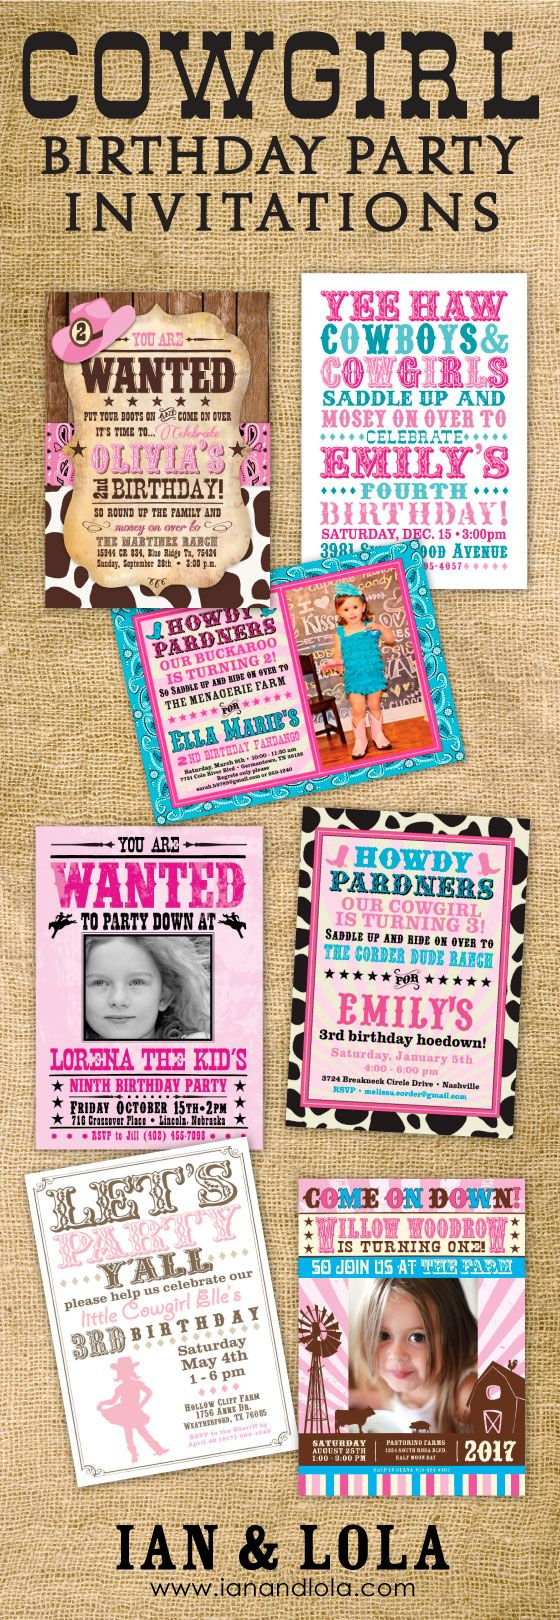 Cowboy party ideas goodtoknow - Bandana Burlap Rustic And Western Shop For Cute And Fully Customizable Cowgirl And Farm Style Birthday Party Invitations At Ian And Lola